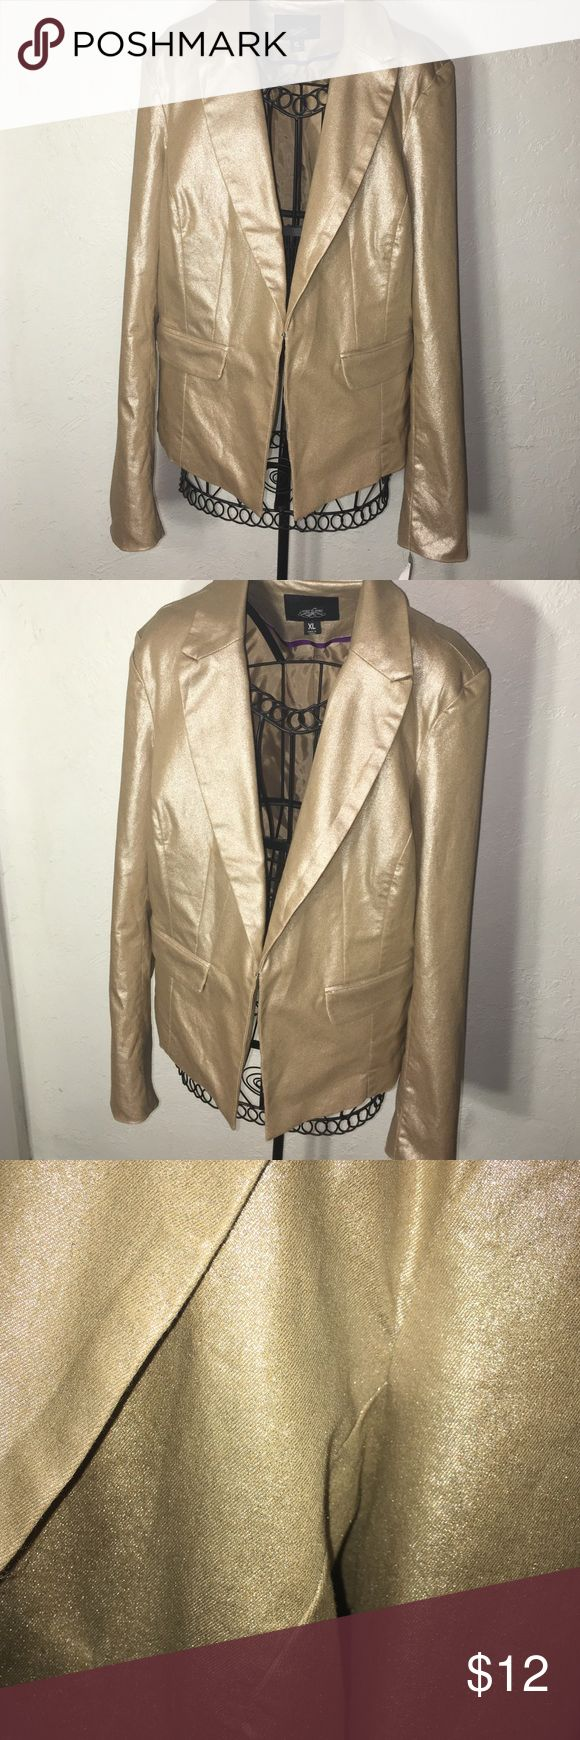 Sparkly champagne gold blazer Sparkly champagne gold blazer with shoulder pads and hook latch. Never worn before. one5one Jackets & Coats Blazers